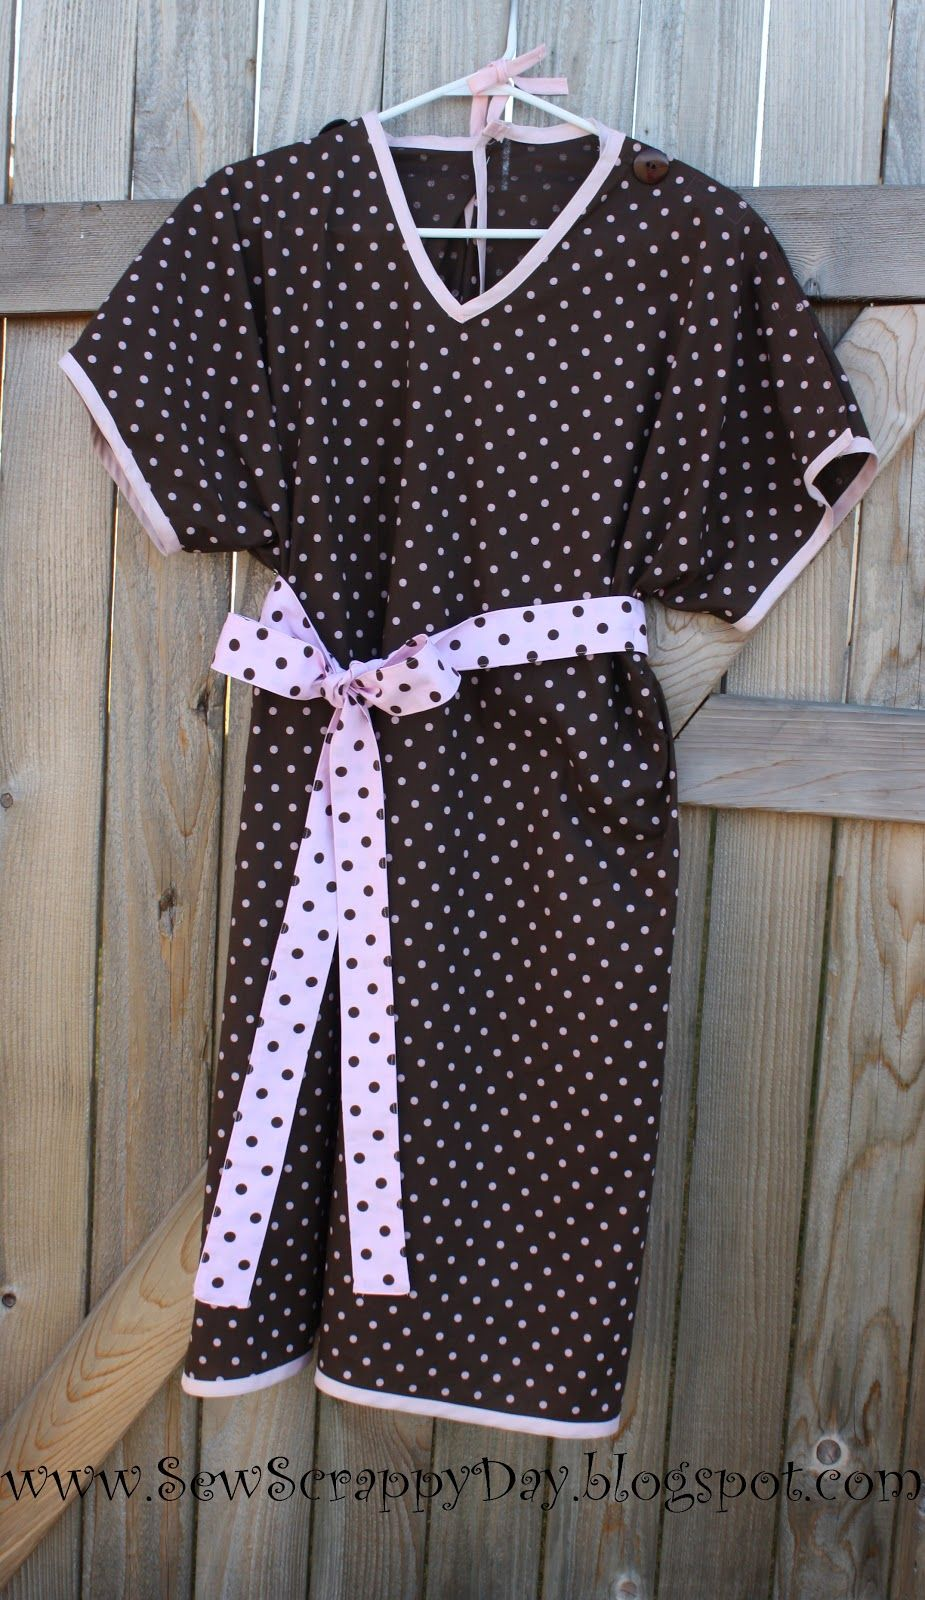 Sew Scrappy Day: Homemade Hospital Gown using Free Lazy Girl Designs ...